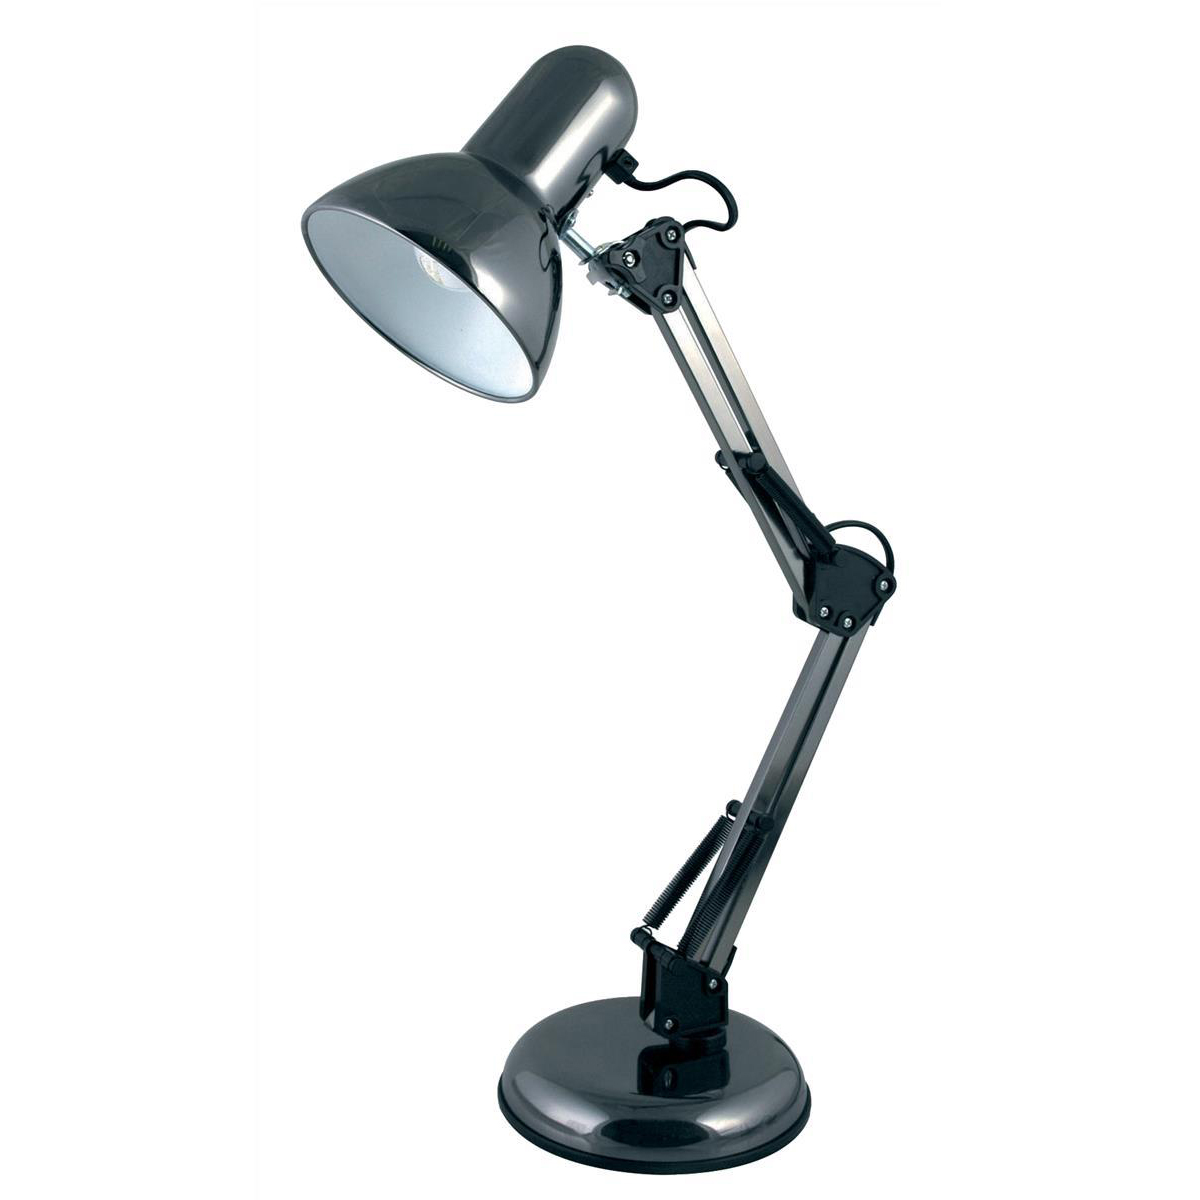 Image for Desk Lamp Adjustable Arm 35W Maximum Height of 520mm Base Size of 150x150x40mm Black